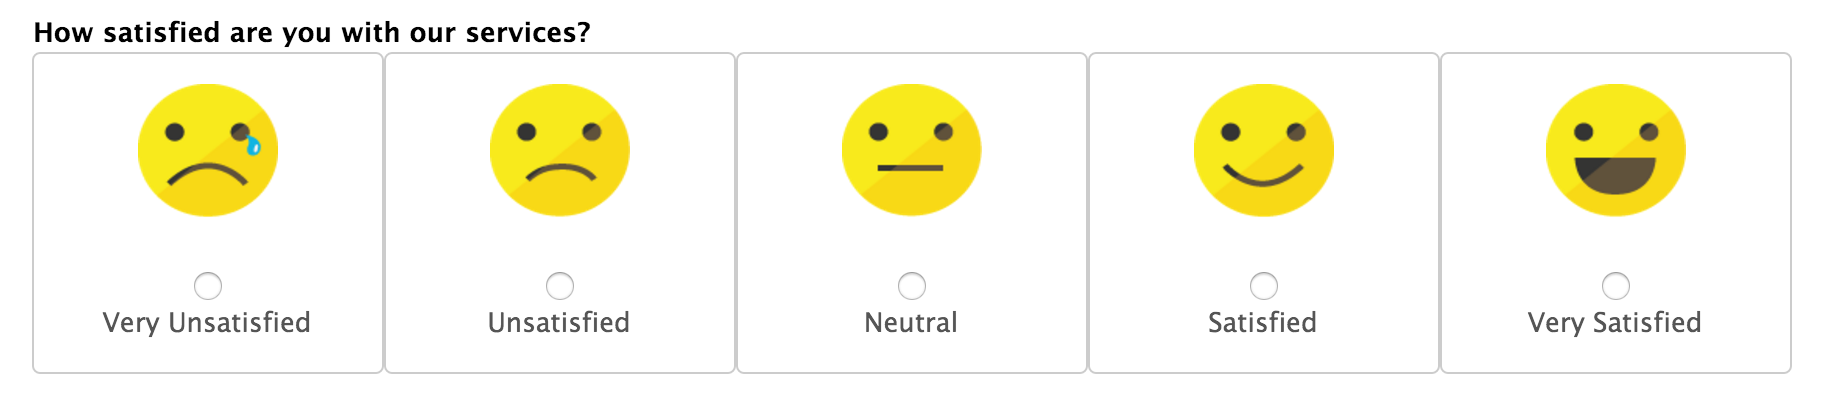 Graphic of labeled CSAT score scale with emoticons